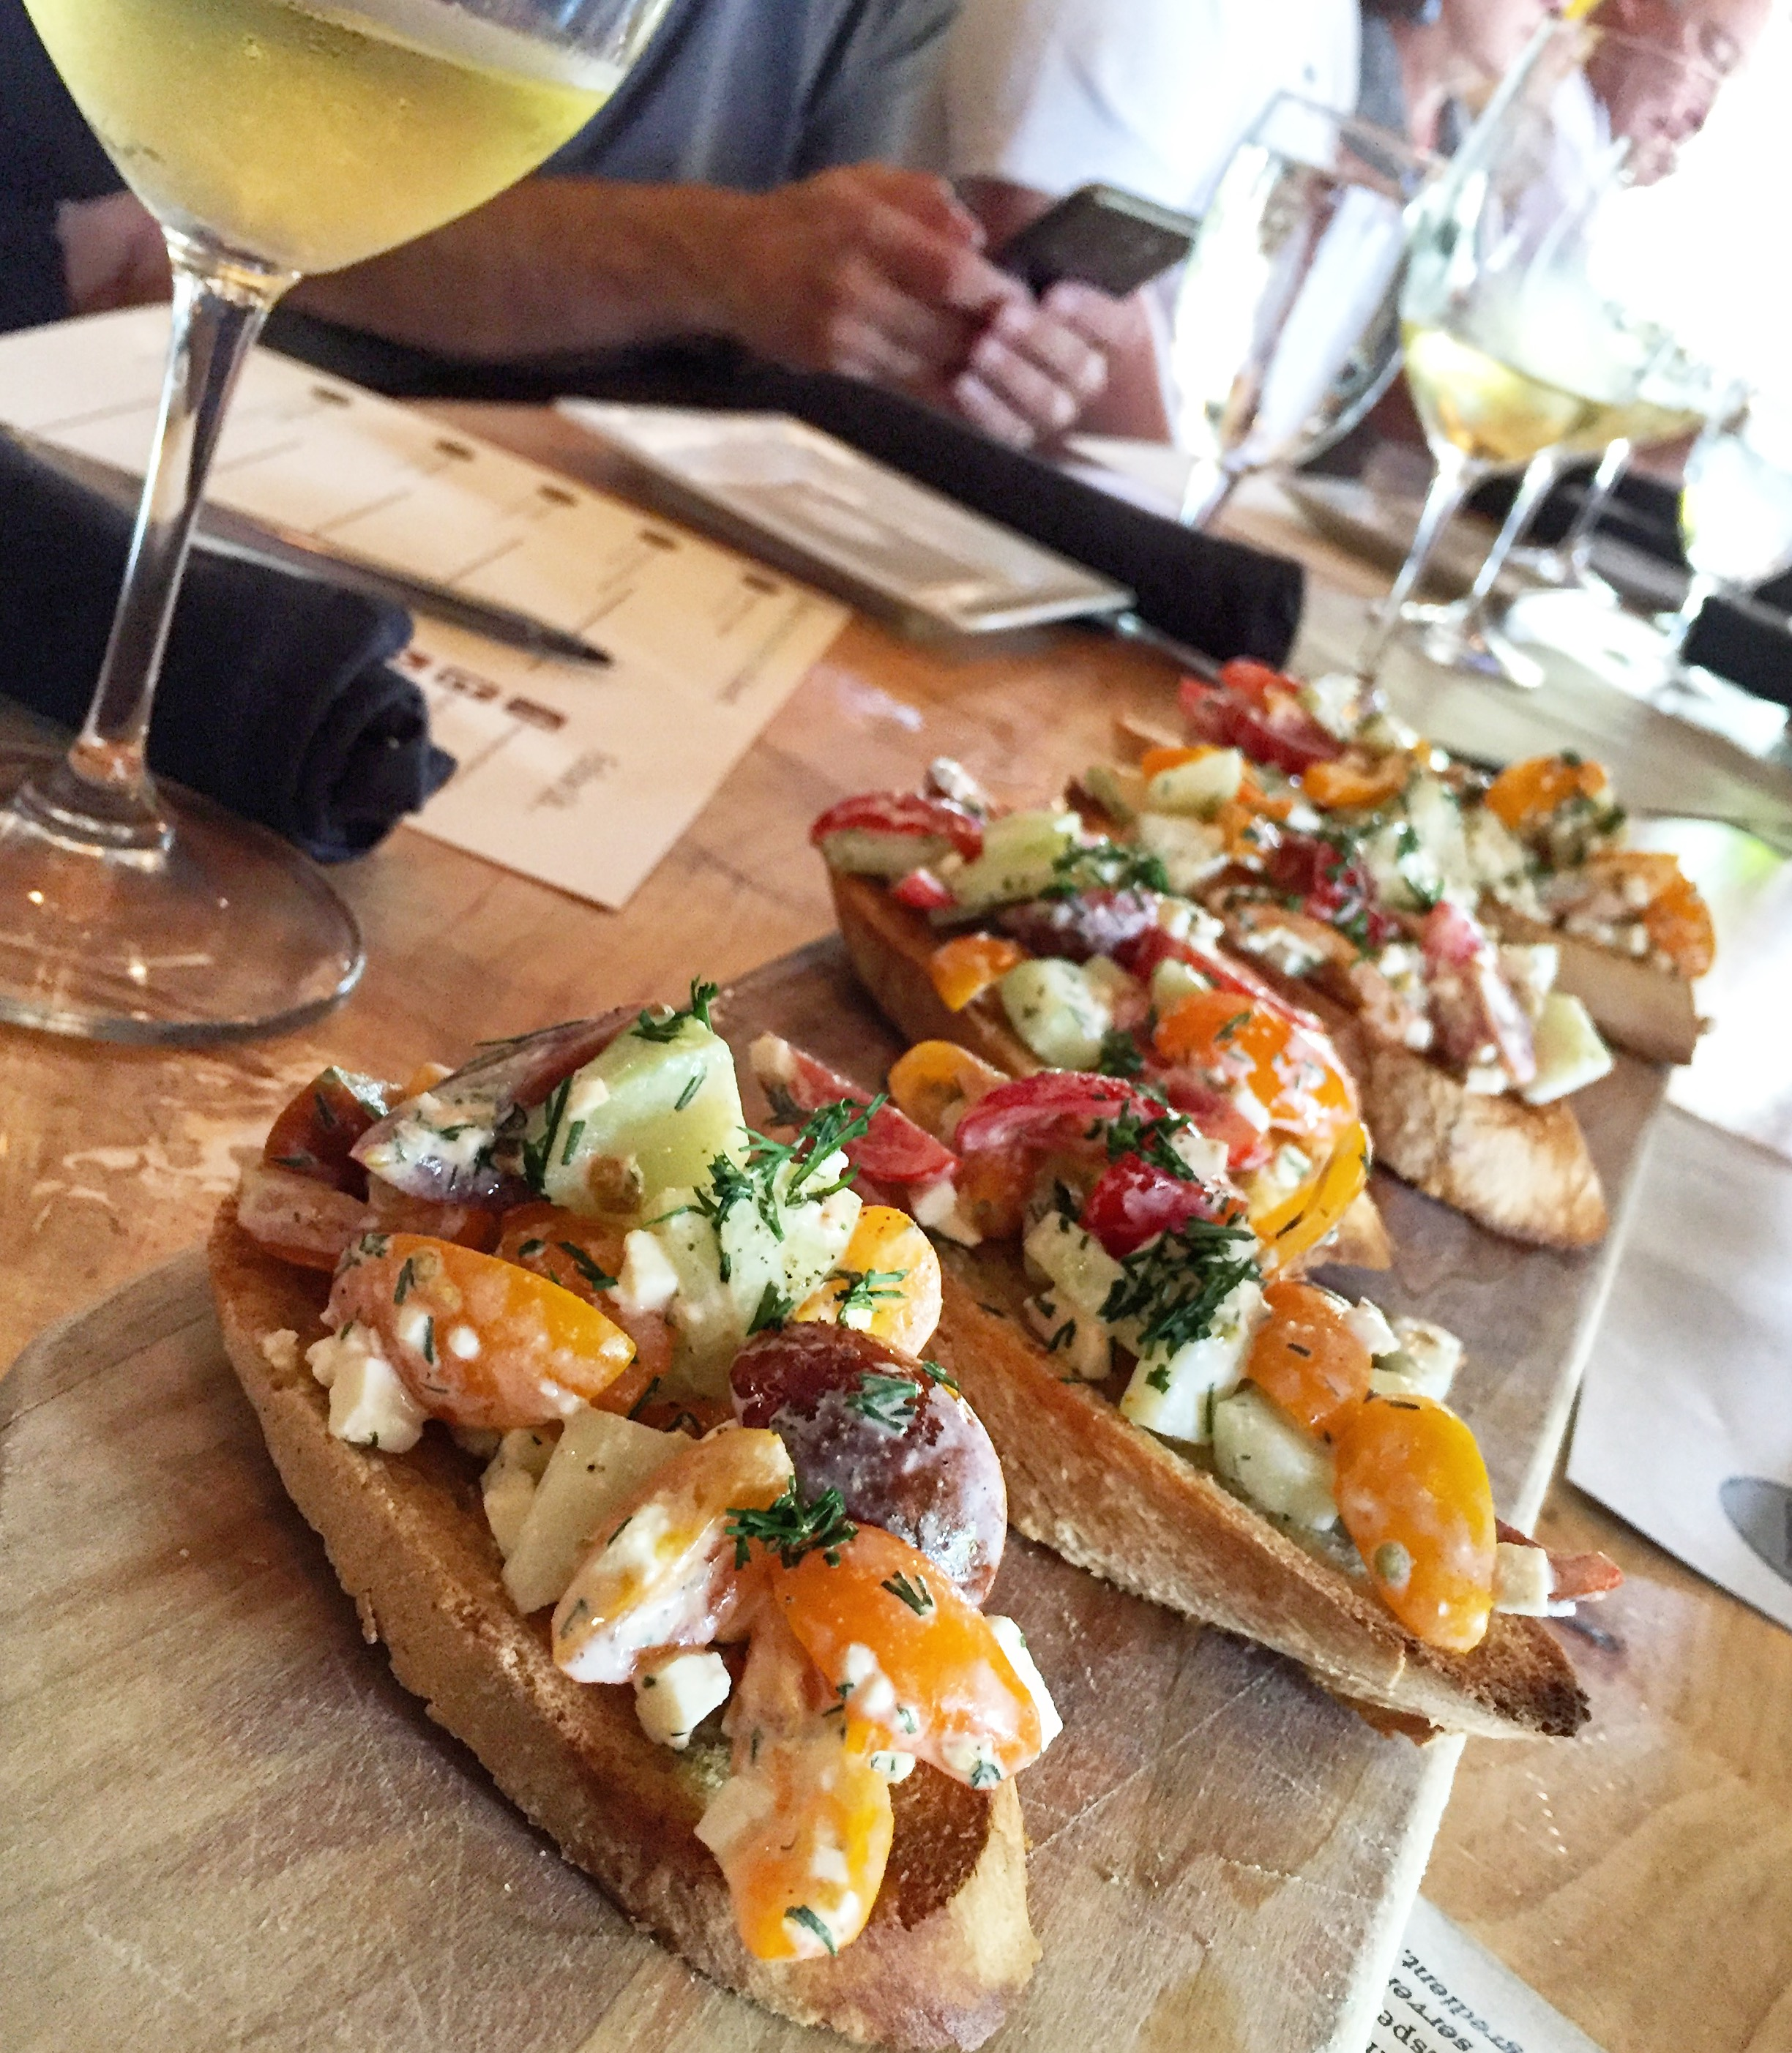 Dishes & Delights of Dilworth Tour | Charlotte, NC - Feast Food Tours